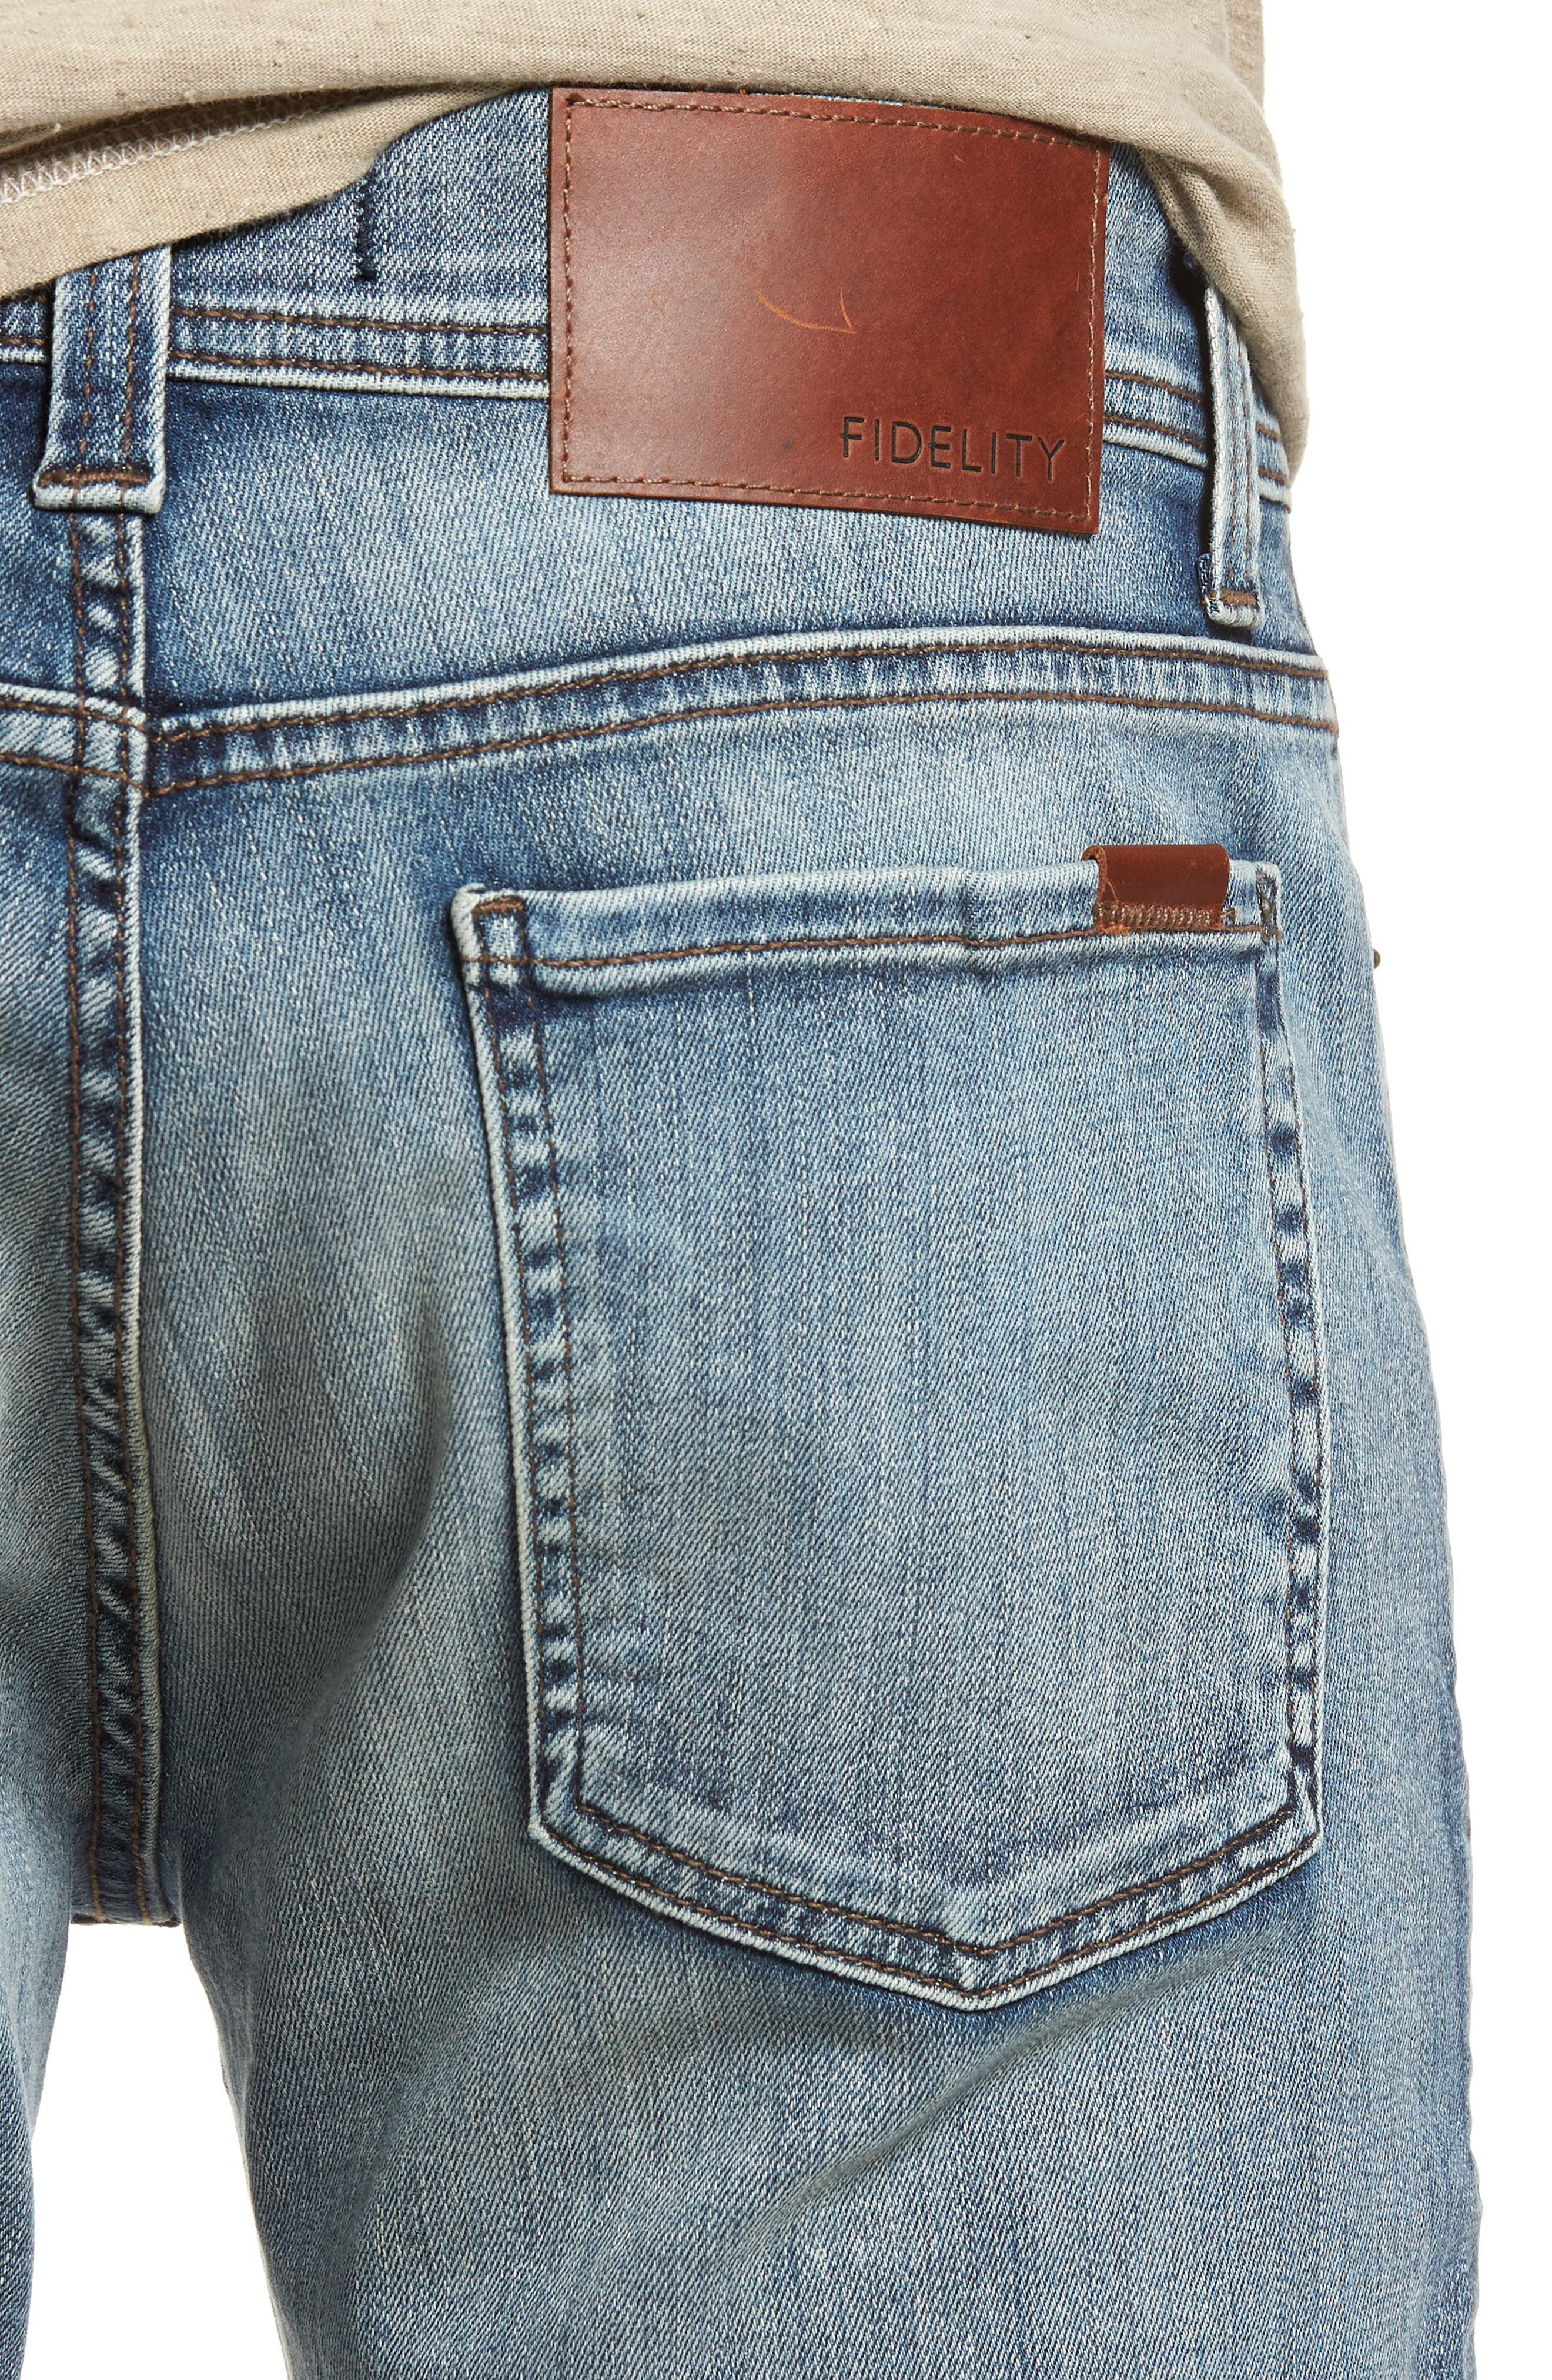 Jimmy Slim Fit Jeans,                             Alternate thumbnail 4, color,                             400